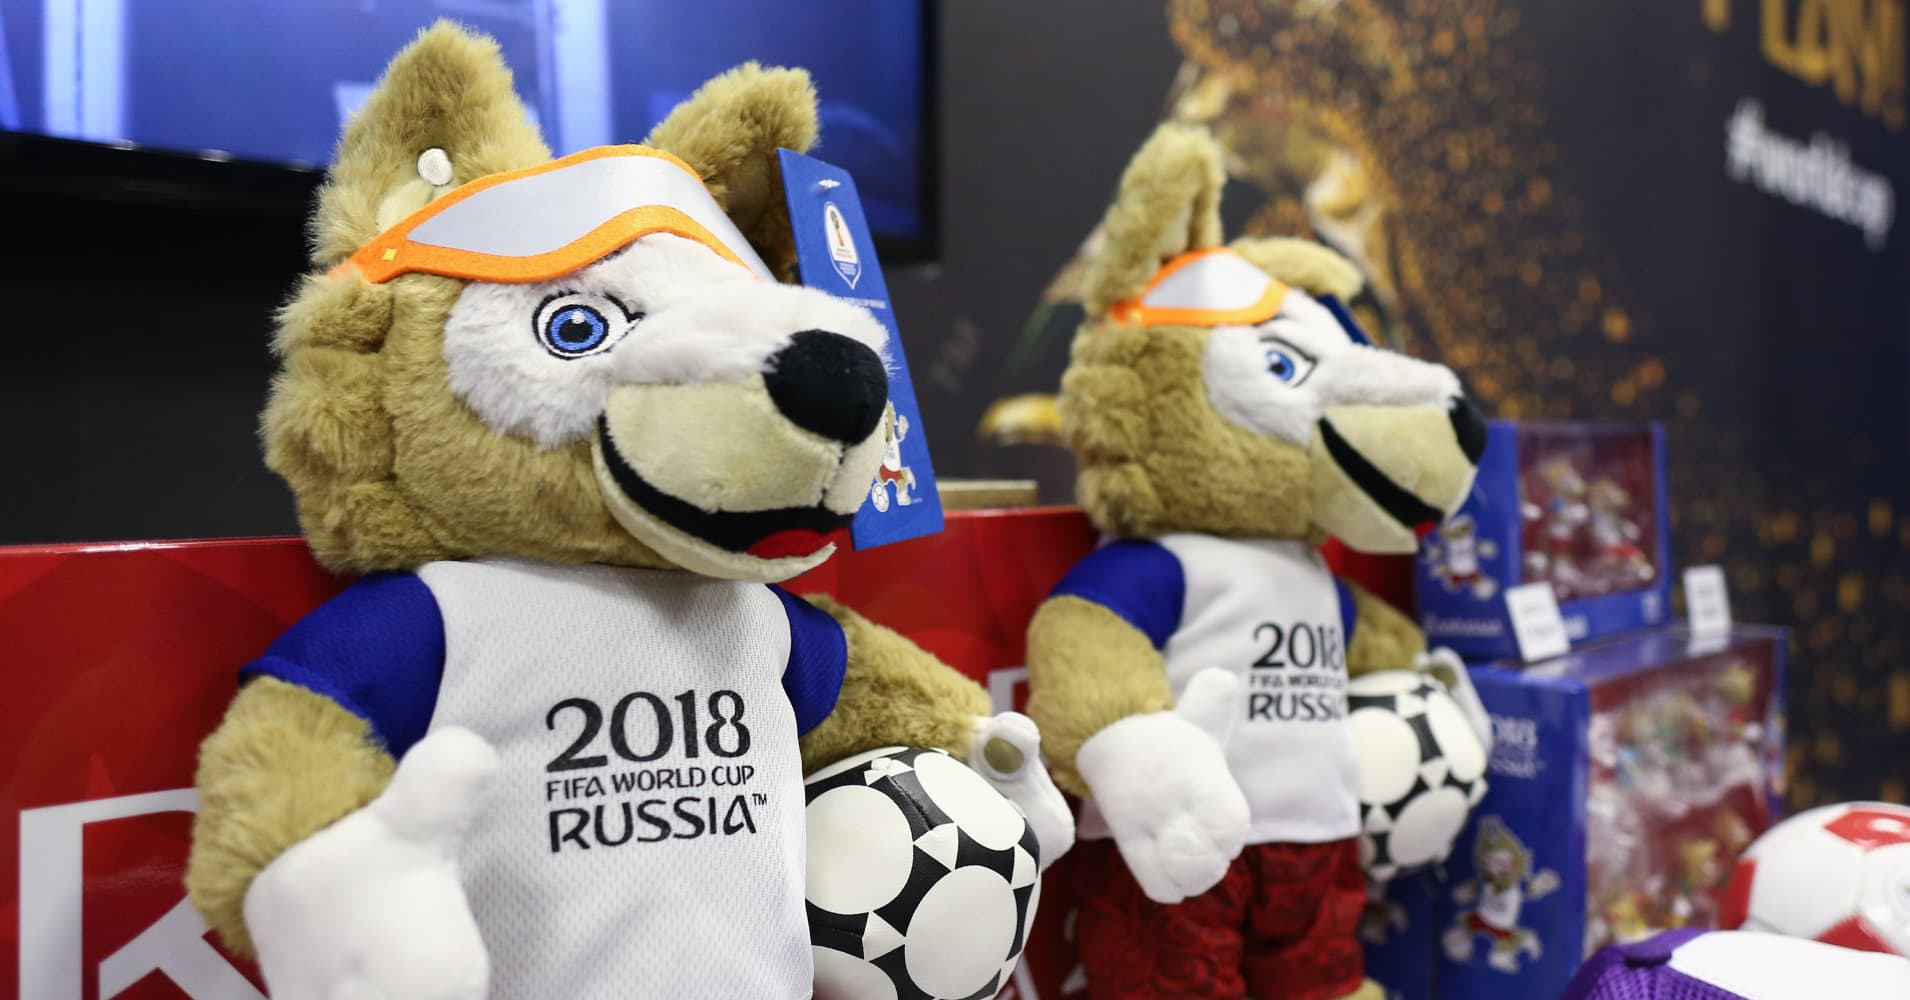 FIFA looks to the East as it struggles to find sponsors for Russia World Cup